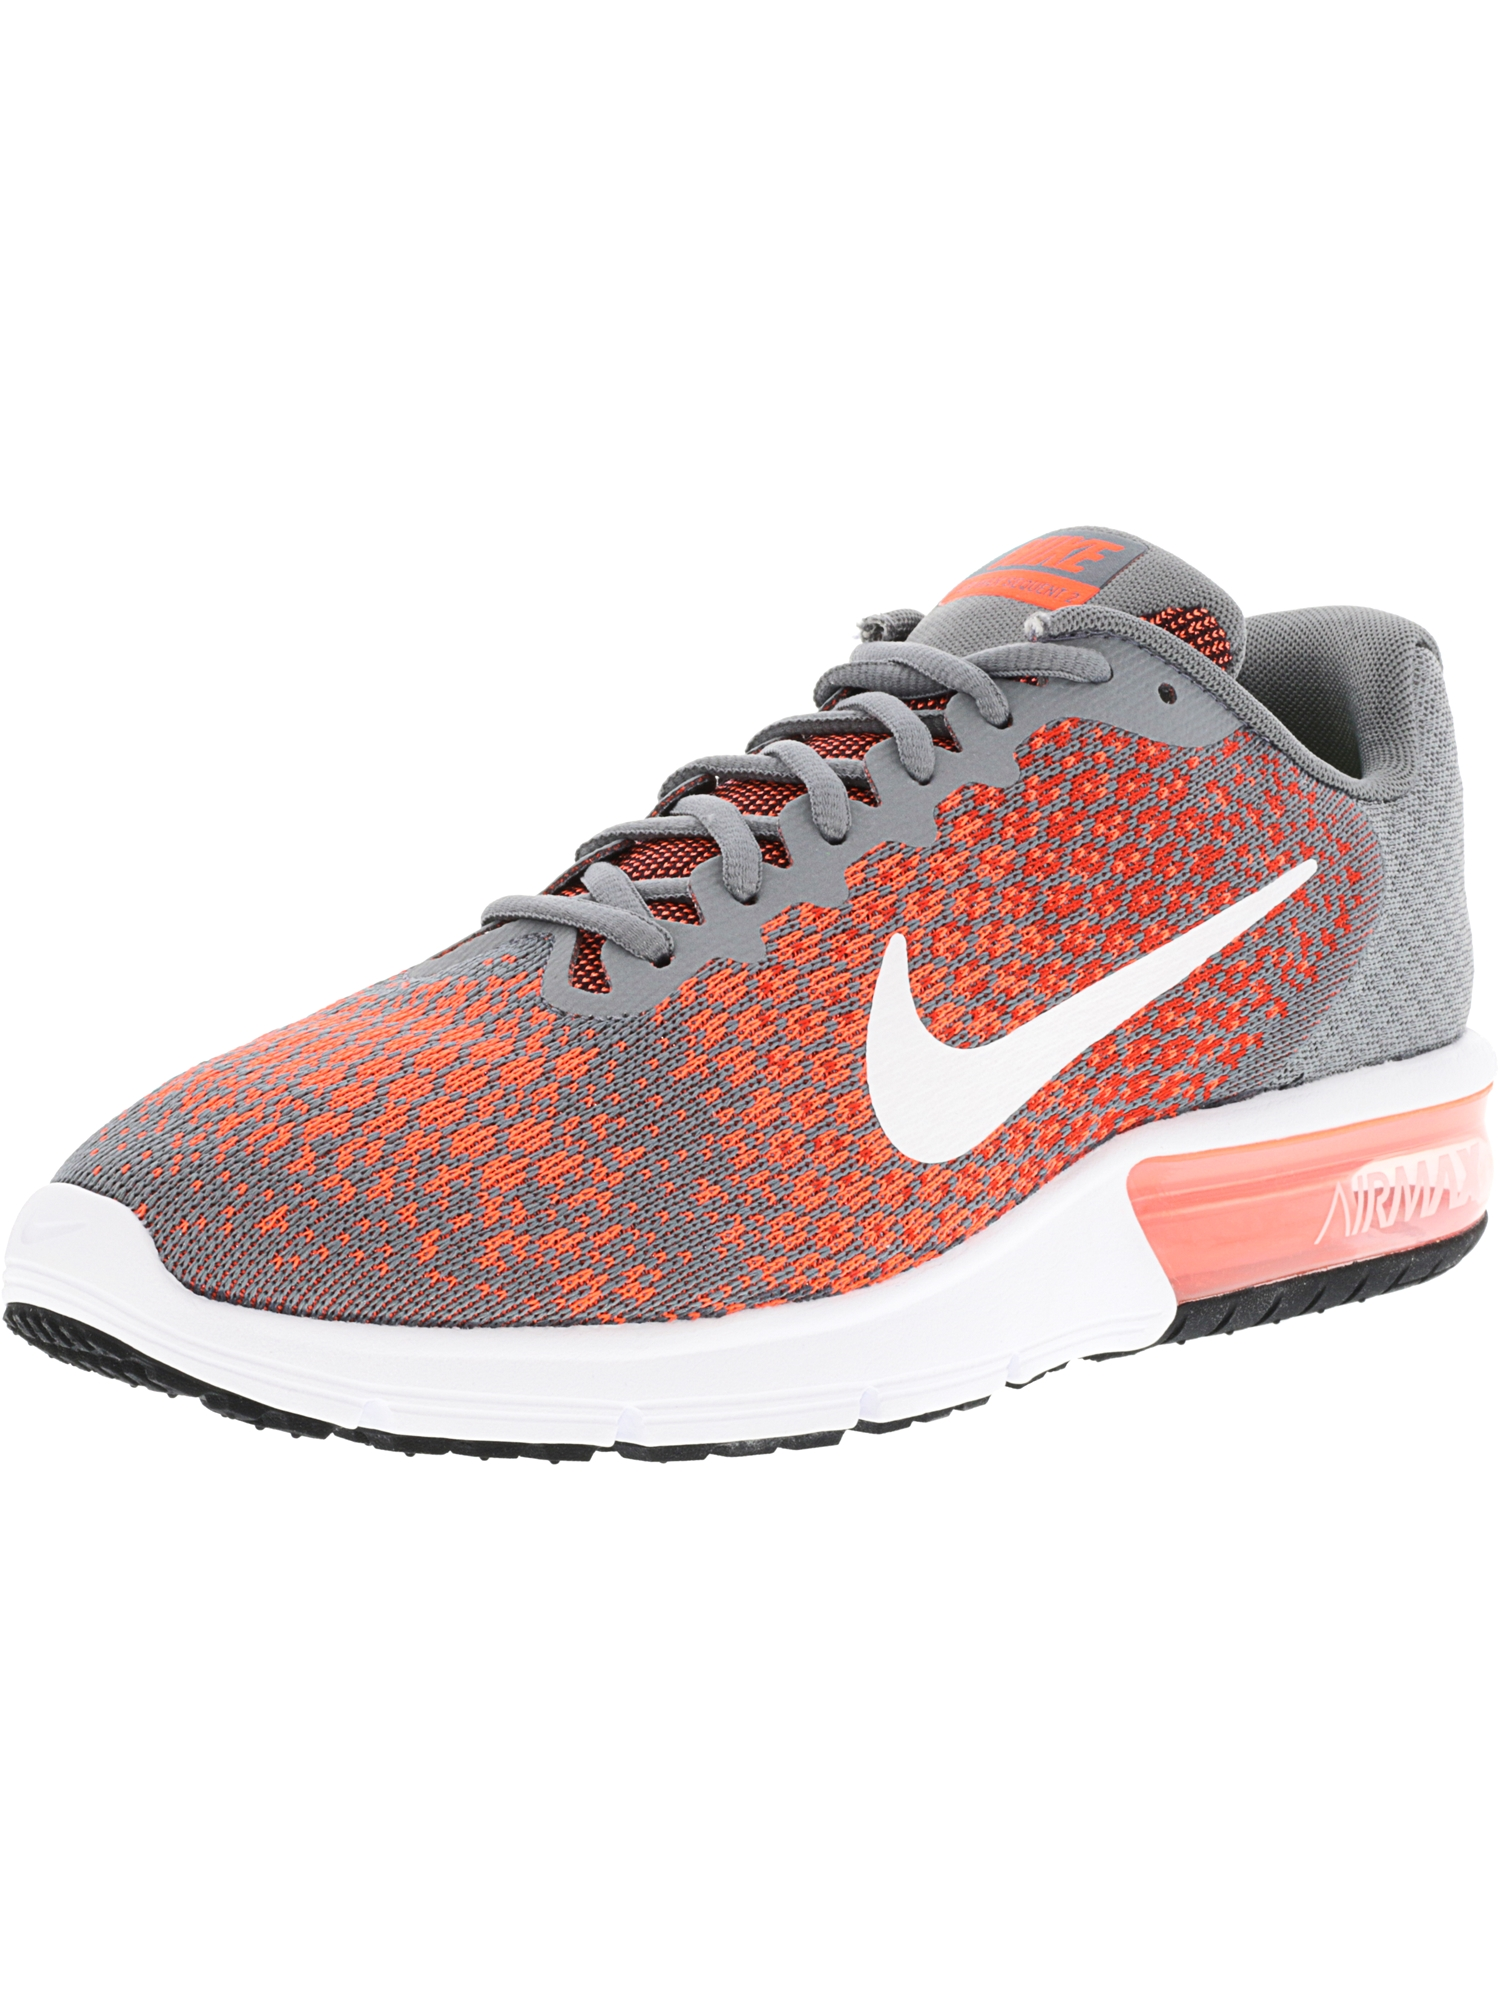 Nike Men's Air Max Sequent 2 Cool Grey / White-Max Orange Ankle-High Running Shoe - 10.5M